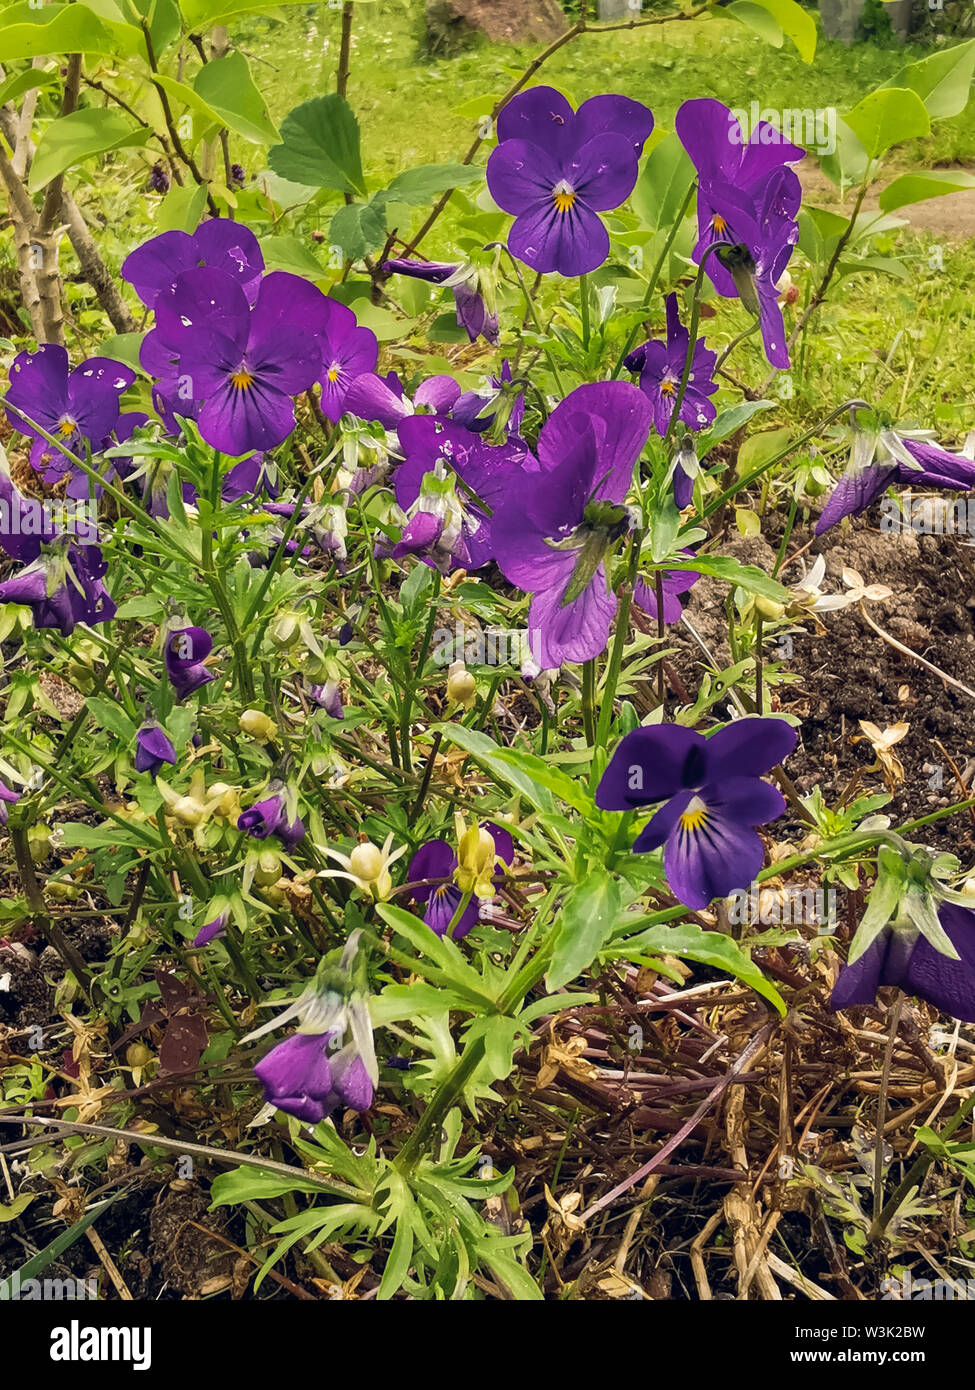 Viola wittrockiana pansy blue flowers with green. - Stock Image